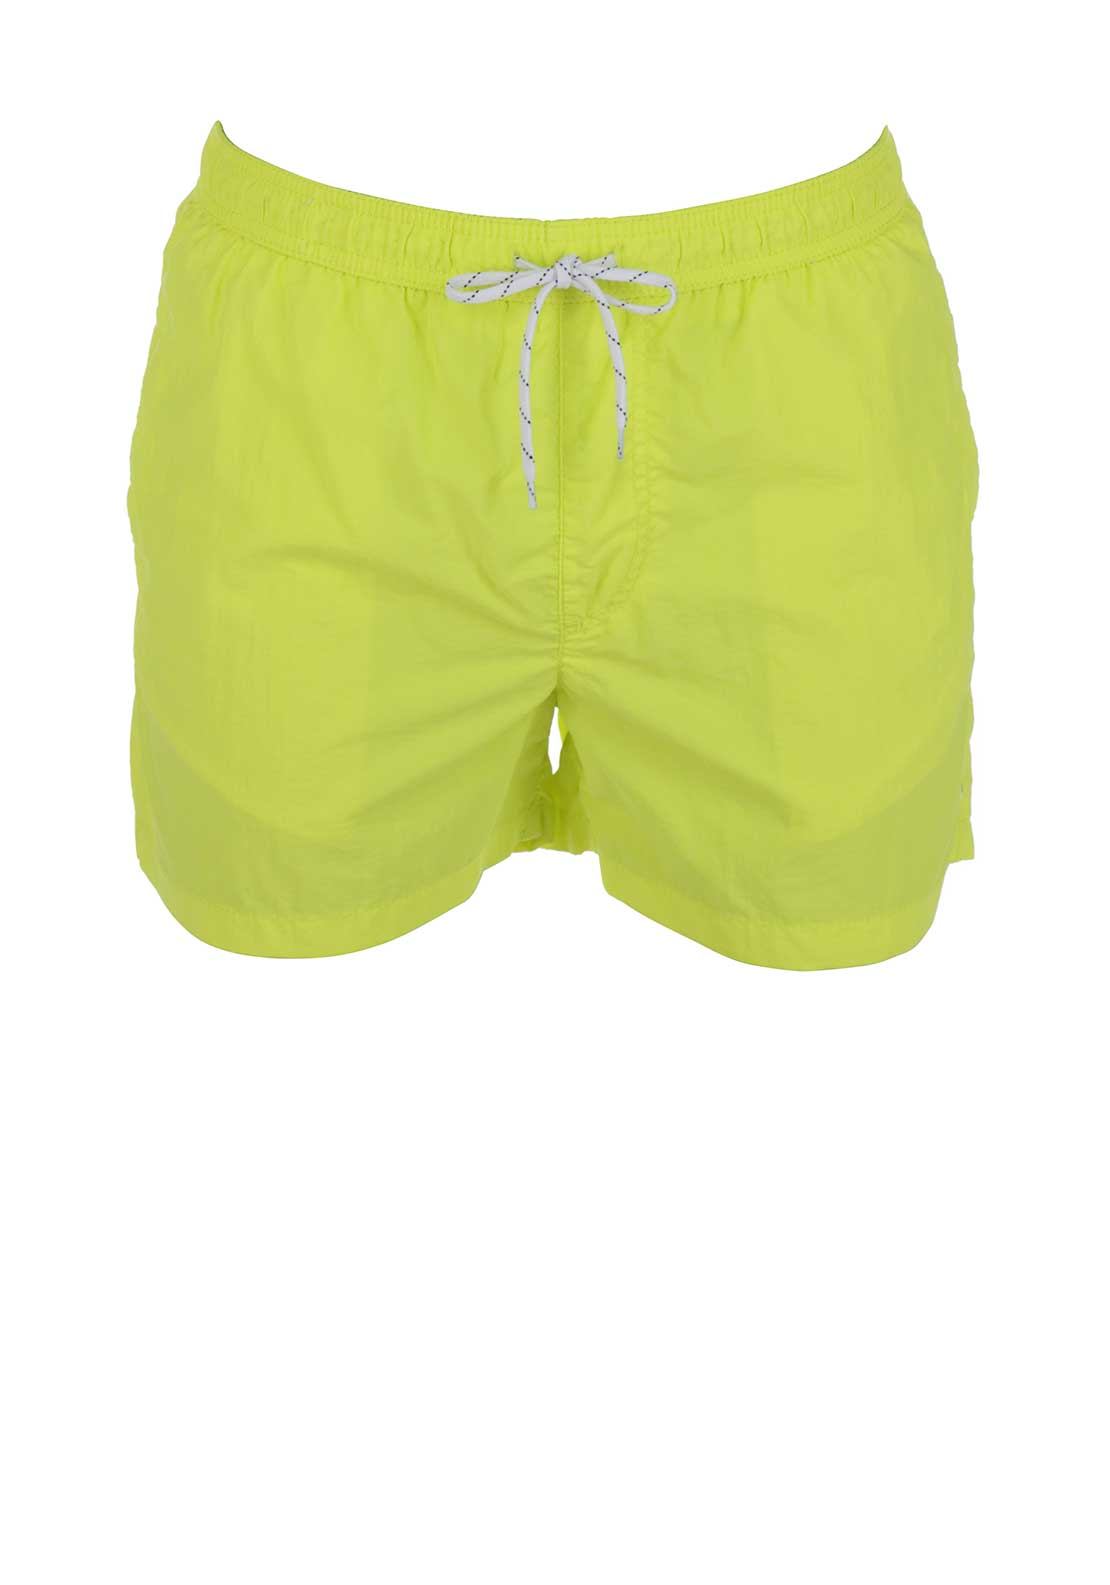 Jack & Jones Malibu Swim Shorts, Lemon Tonic